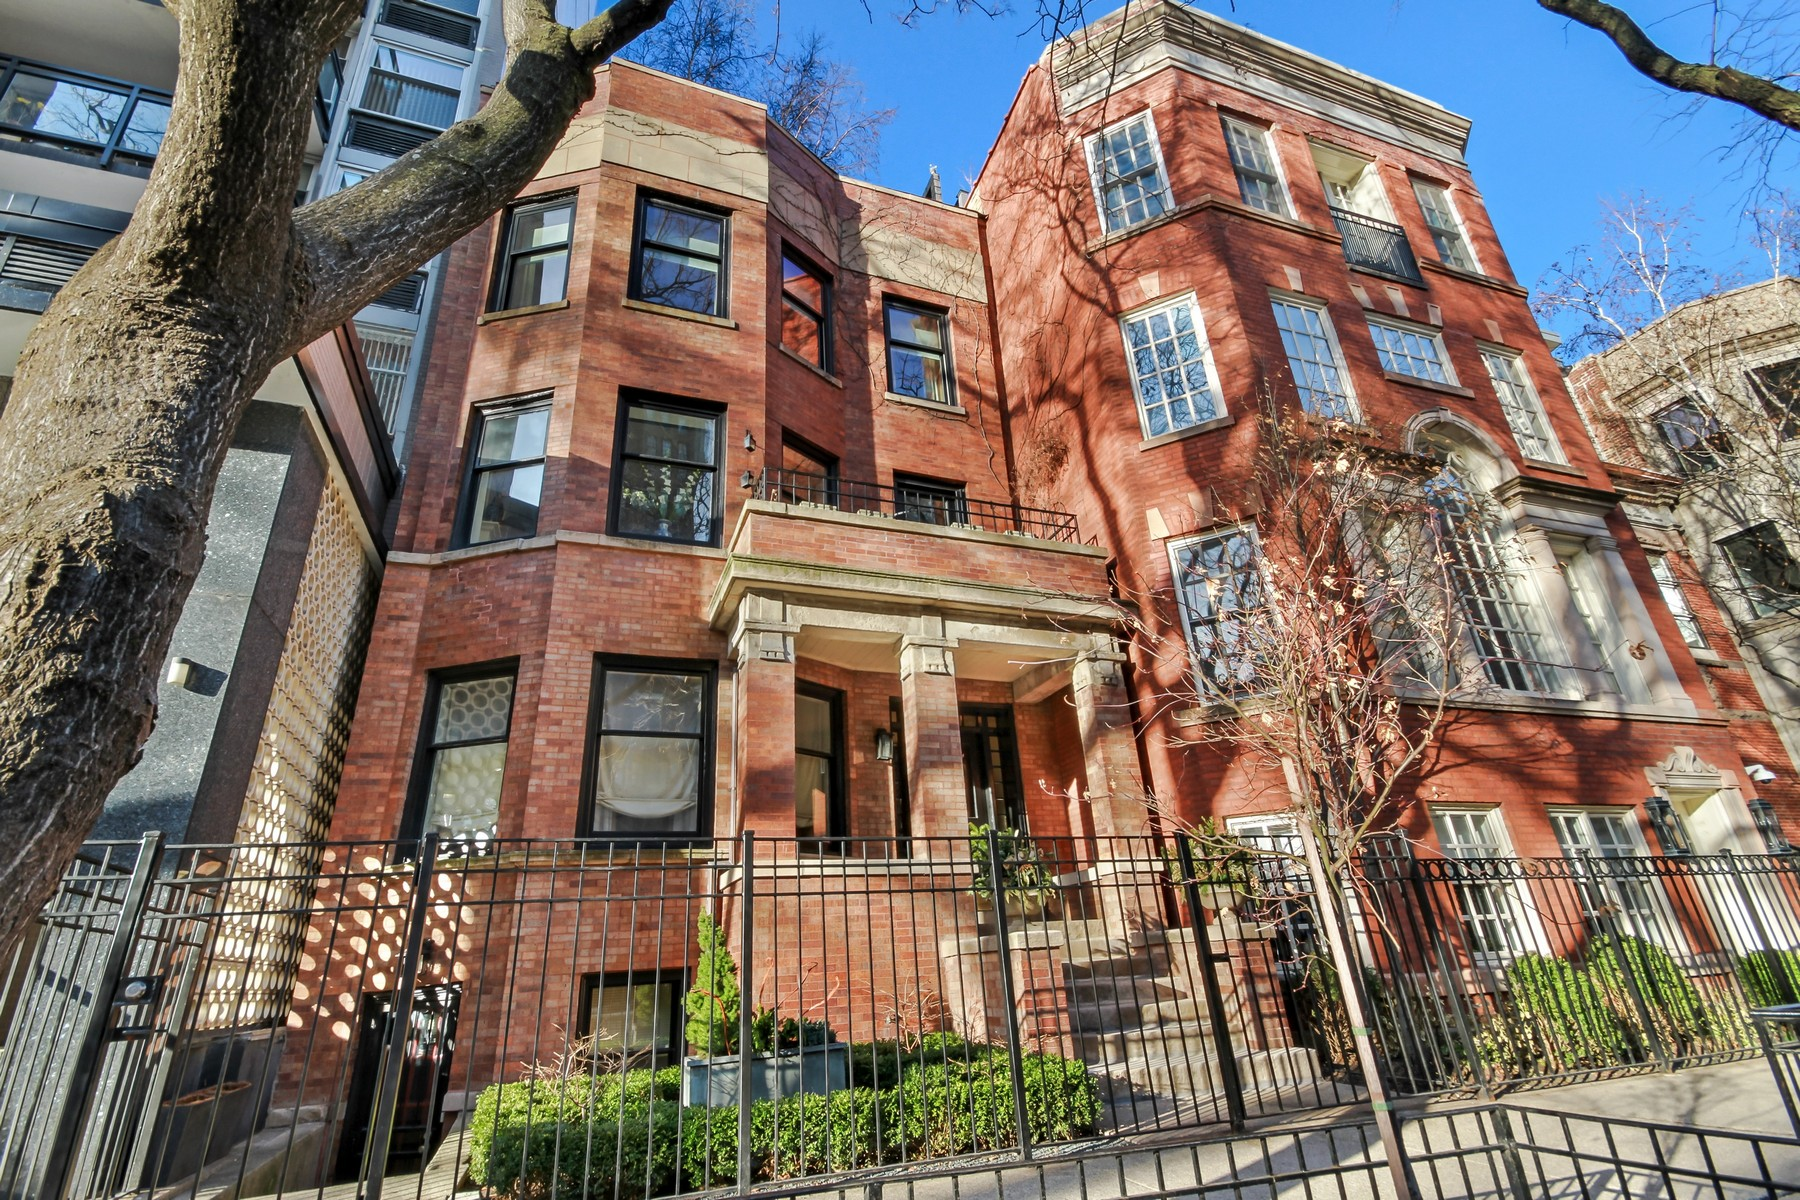 Condominium for Sale at Stunning Two Bed Two Bath in the Heart of the Gold Coast 34 E Elm Street Unit 4, Near North Side, Chicago, Illinois, 60611 United States